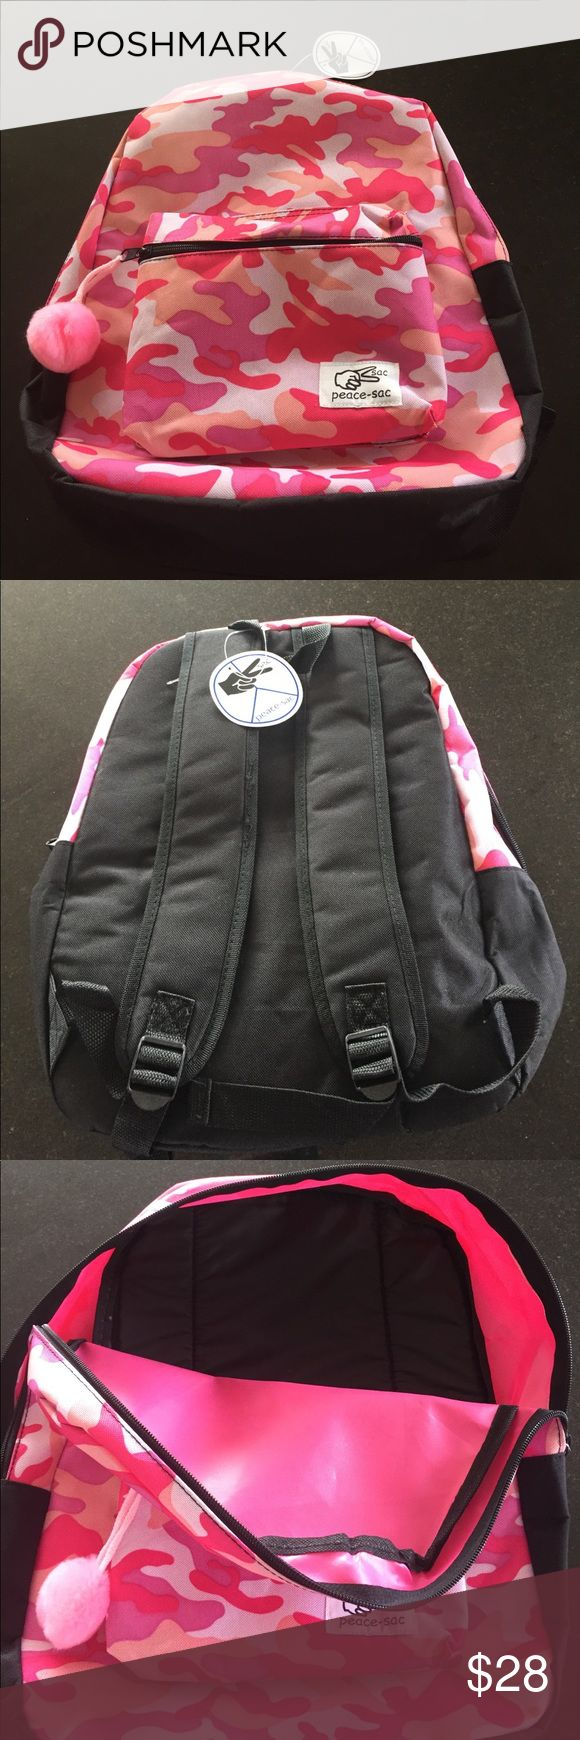 Pink camo backpack Peace-sac pink camo backpack with pink pom pom on outer pocket zipper pull.  Padded back and straps.  NWT peace-sac Bags Backpacks